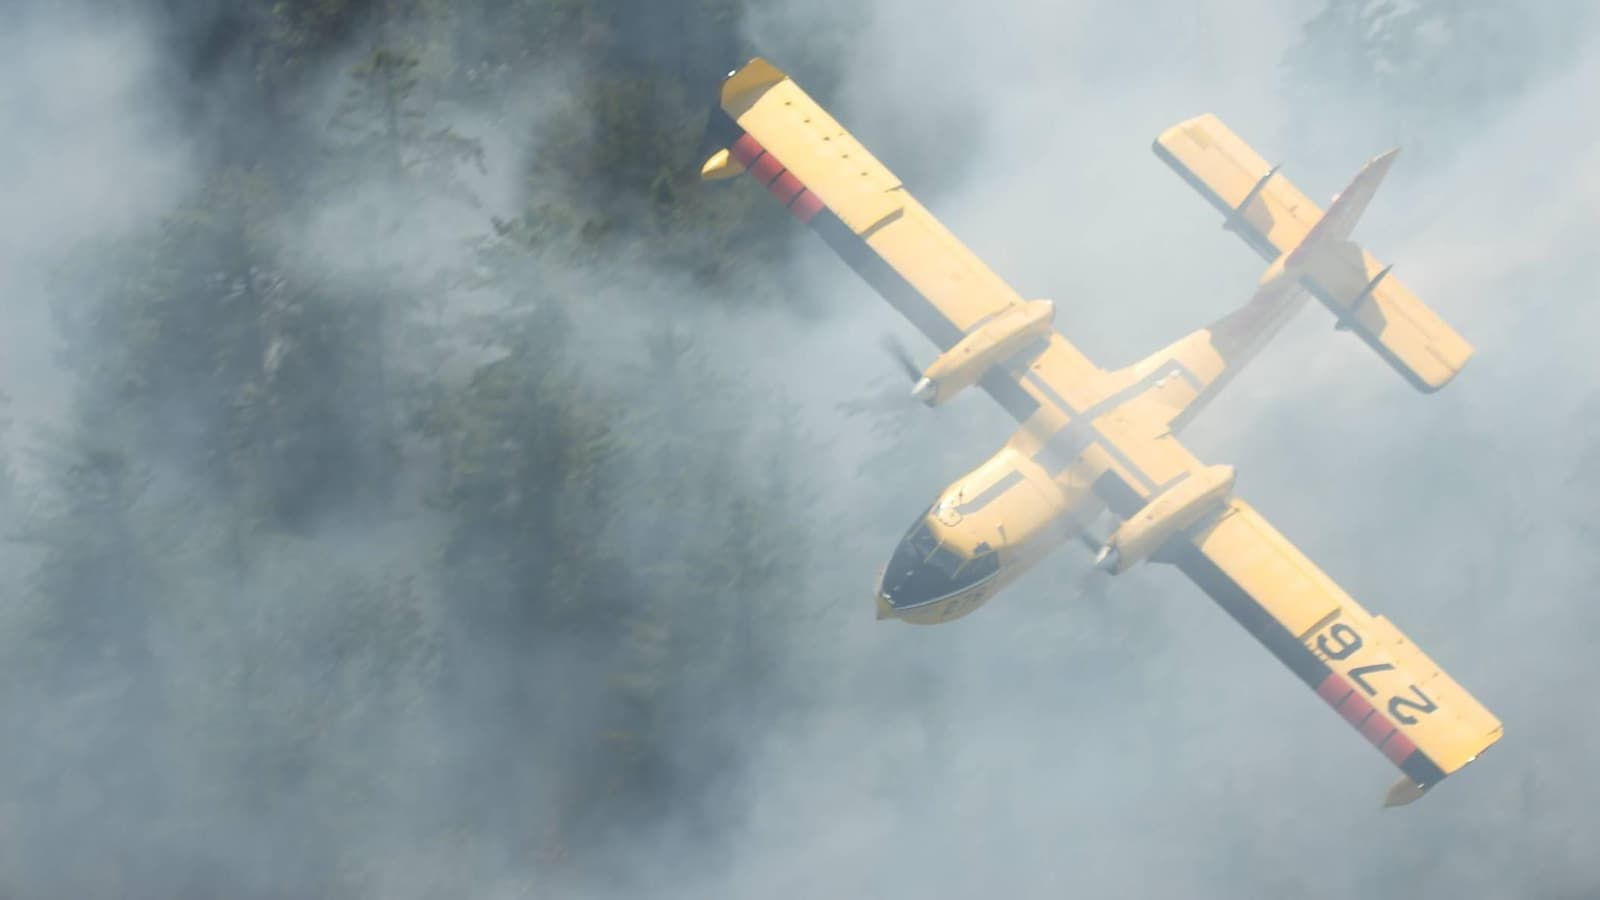 Un avion-citerne participe aux efforts de suppression des feux dans la région de Temagami.